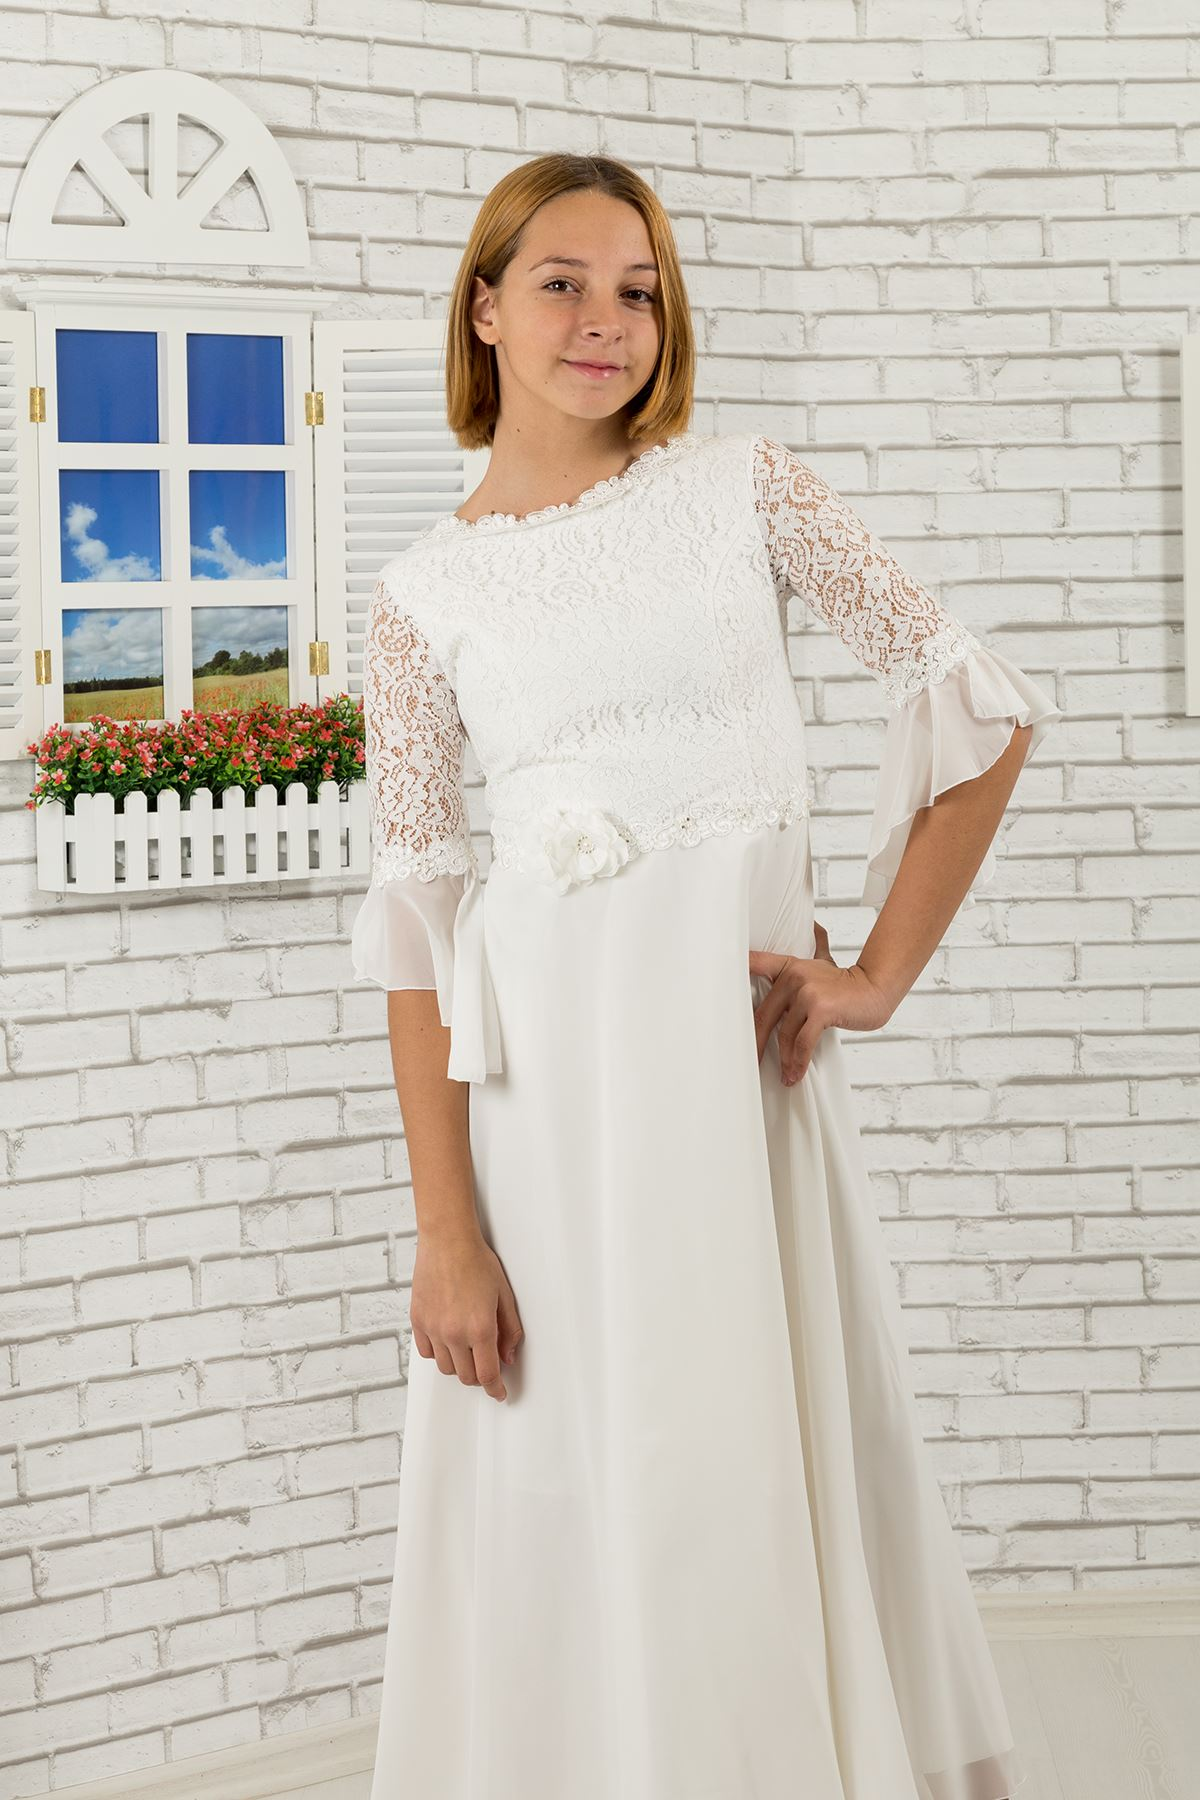 Lace body and sleeves, floral detail at the waist, Girl Evening Dress 463 Ivory